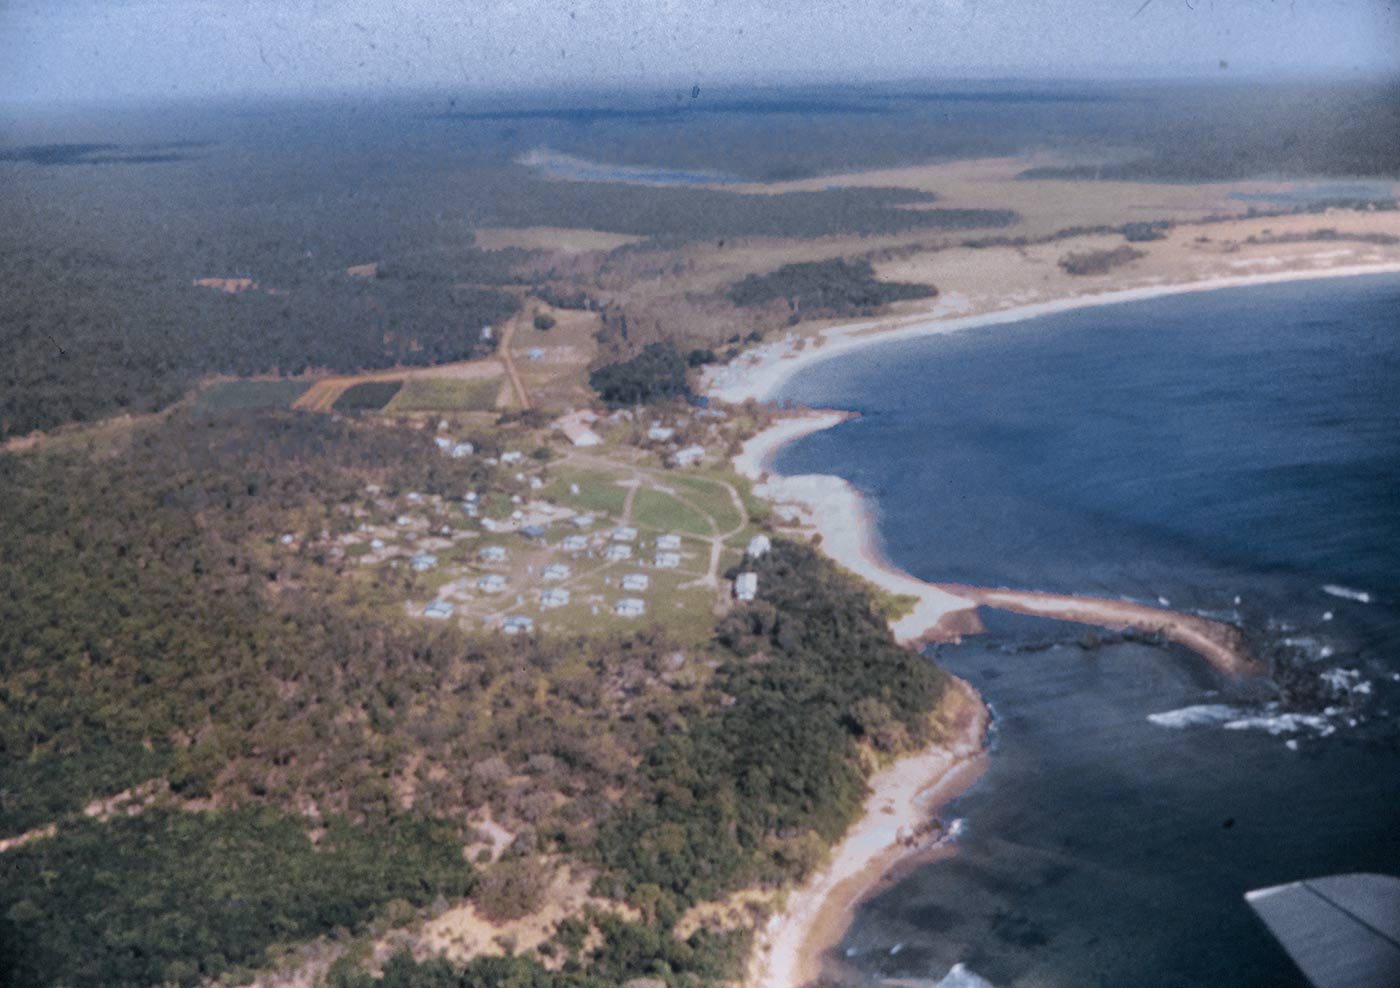 Aerial view of coastal area and bushland with some buildings scattered about.